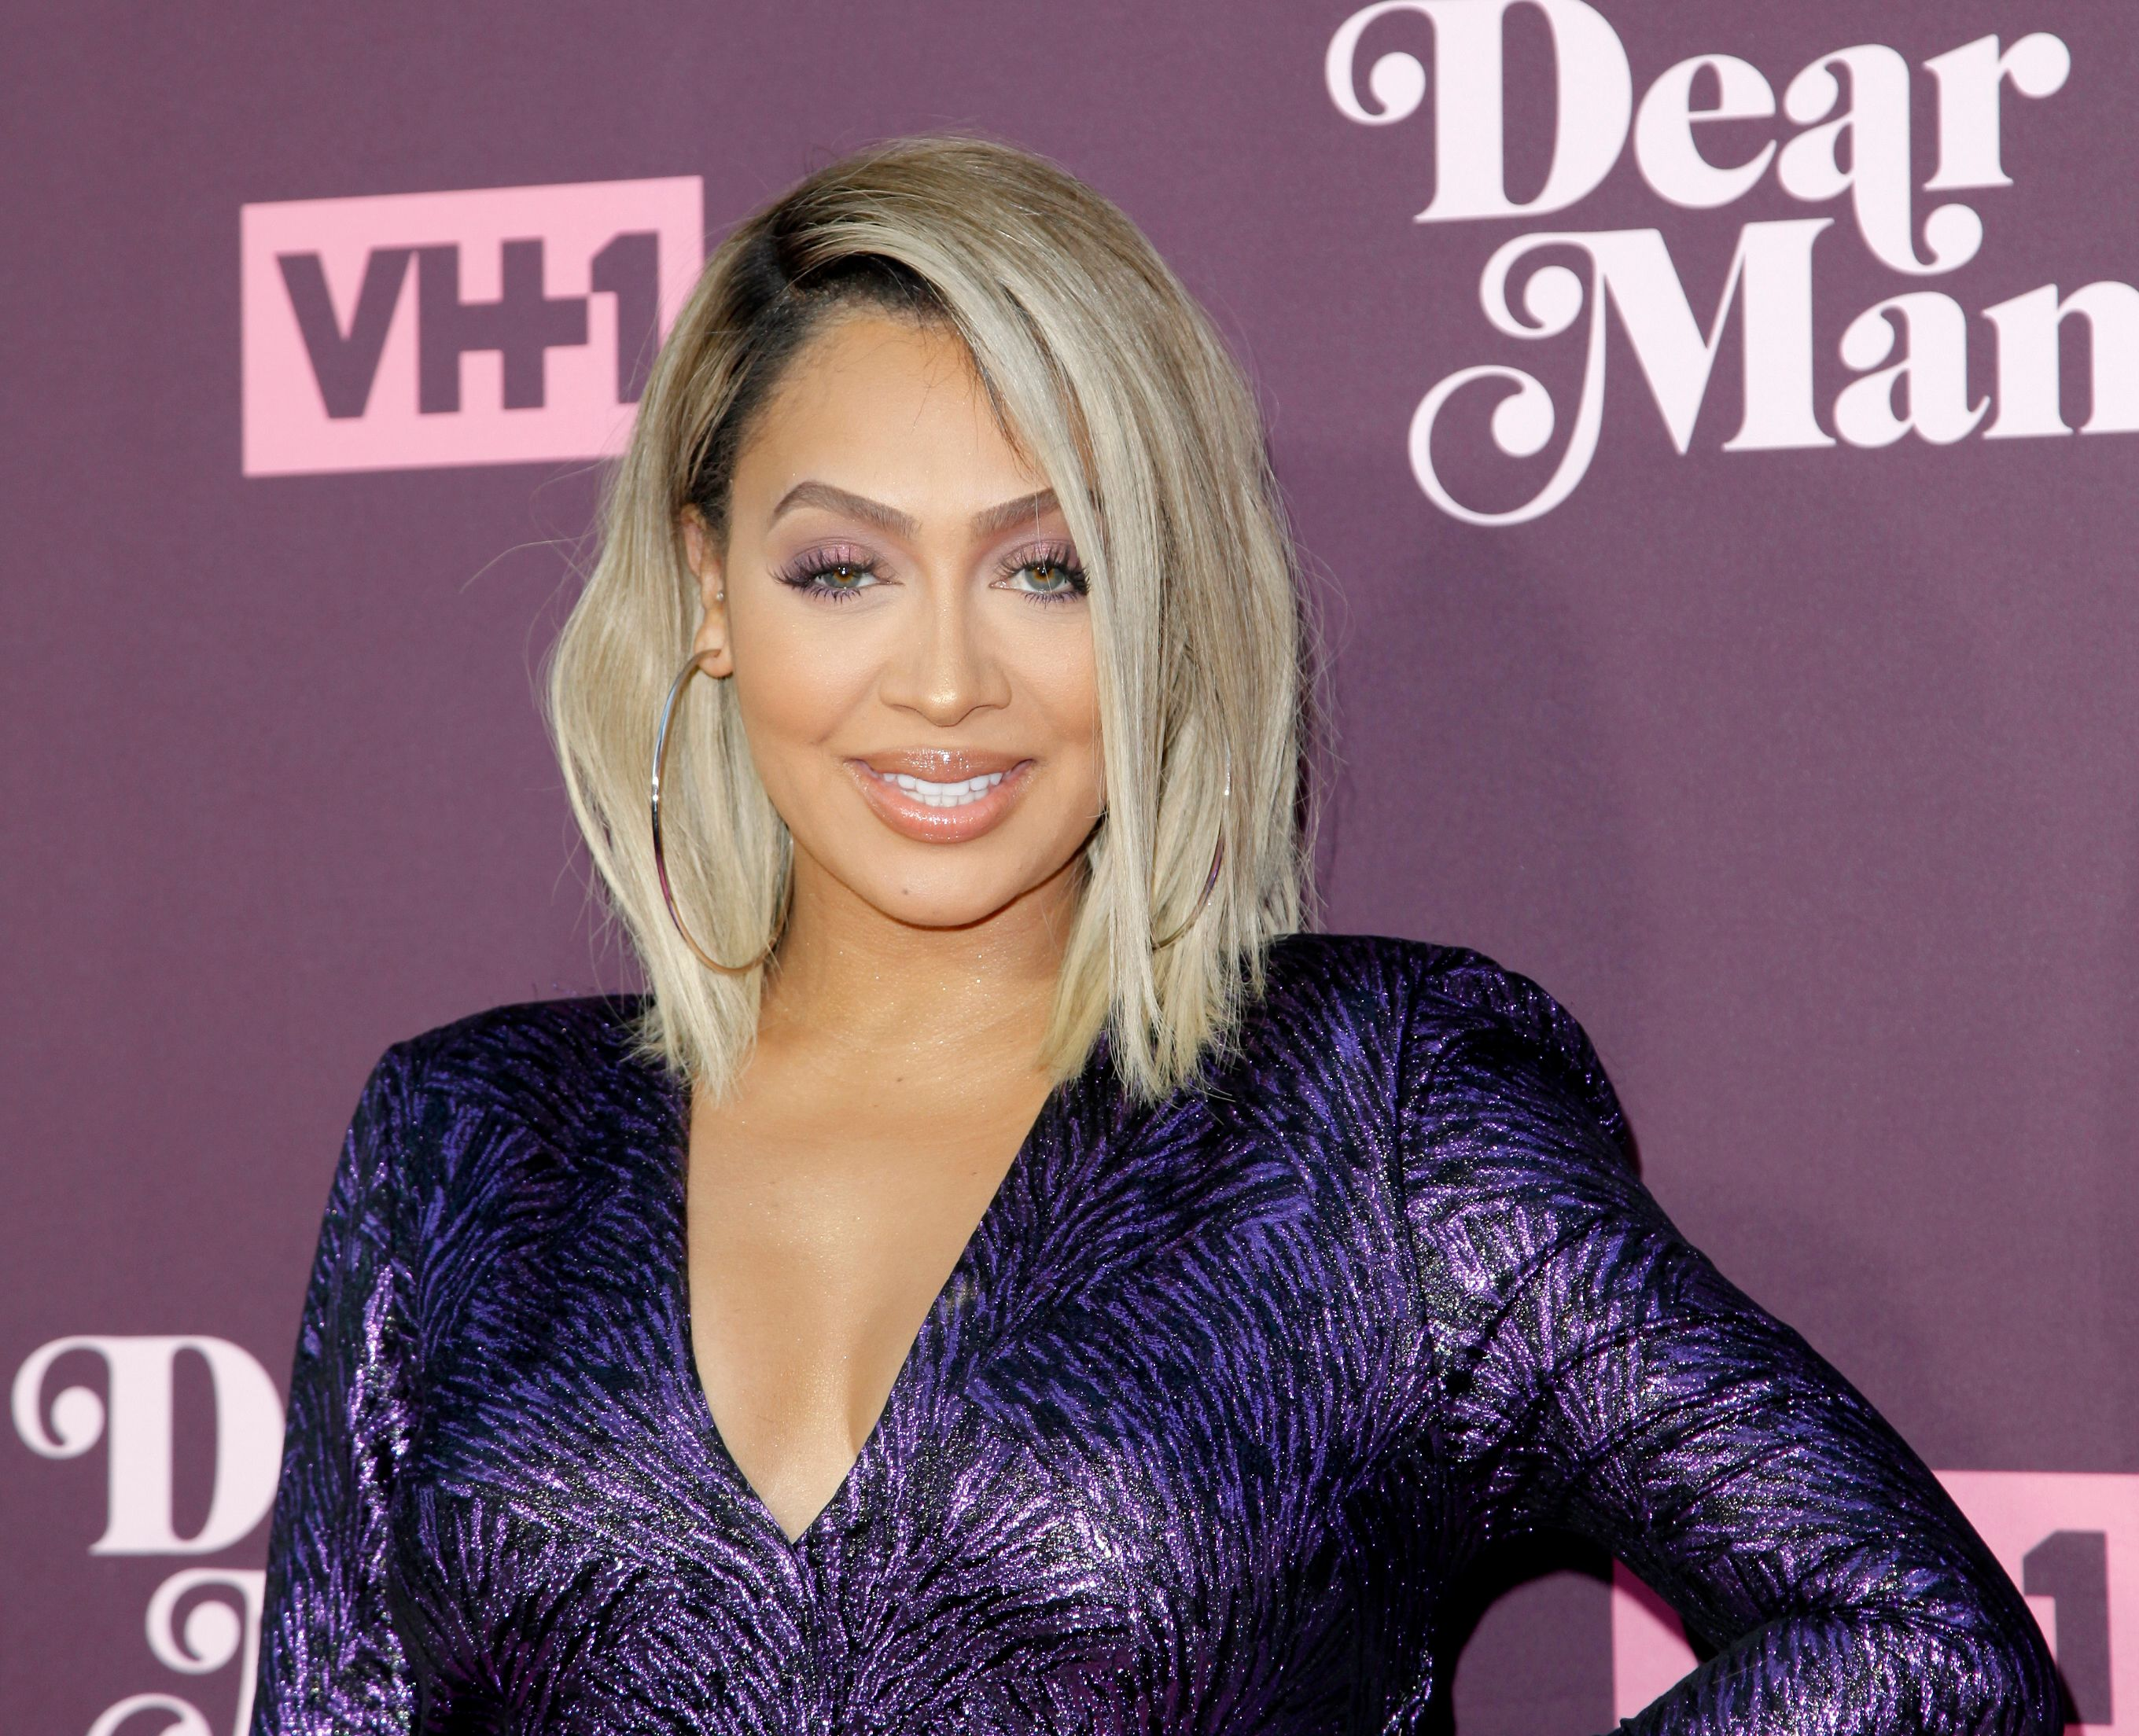 """La La Anthony at VH1's 3rd annual """"Dear Mama: A Love Letter To Moms"""" screening at The Theatre at Ace Hotel on May 3, 2018. 